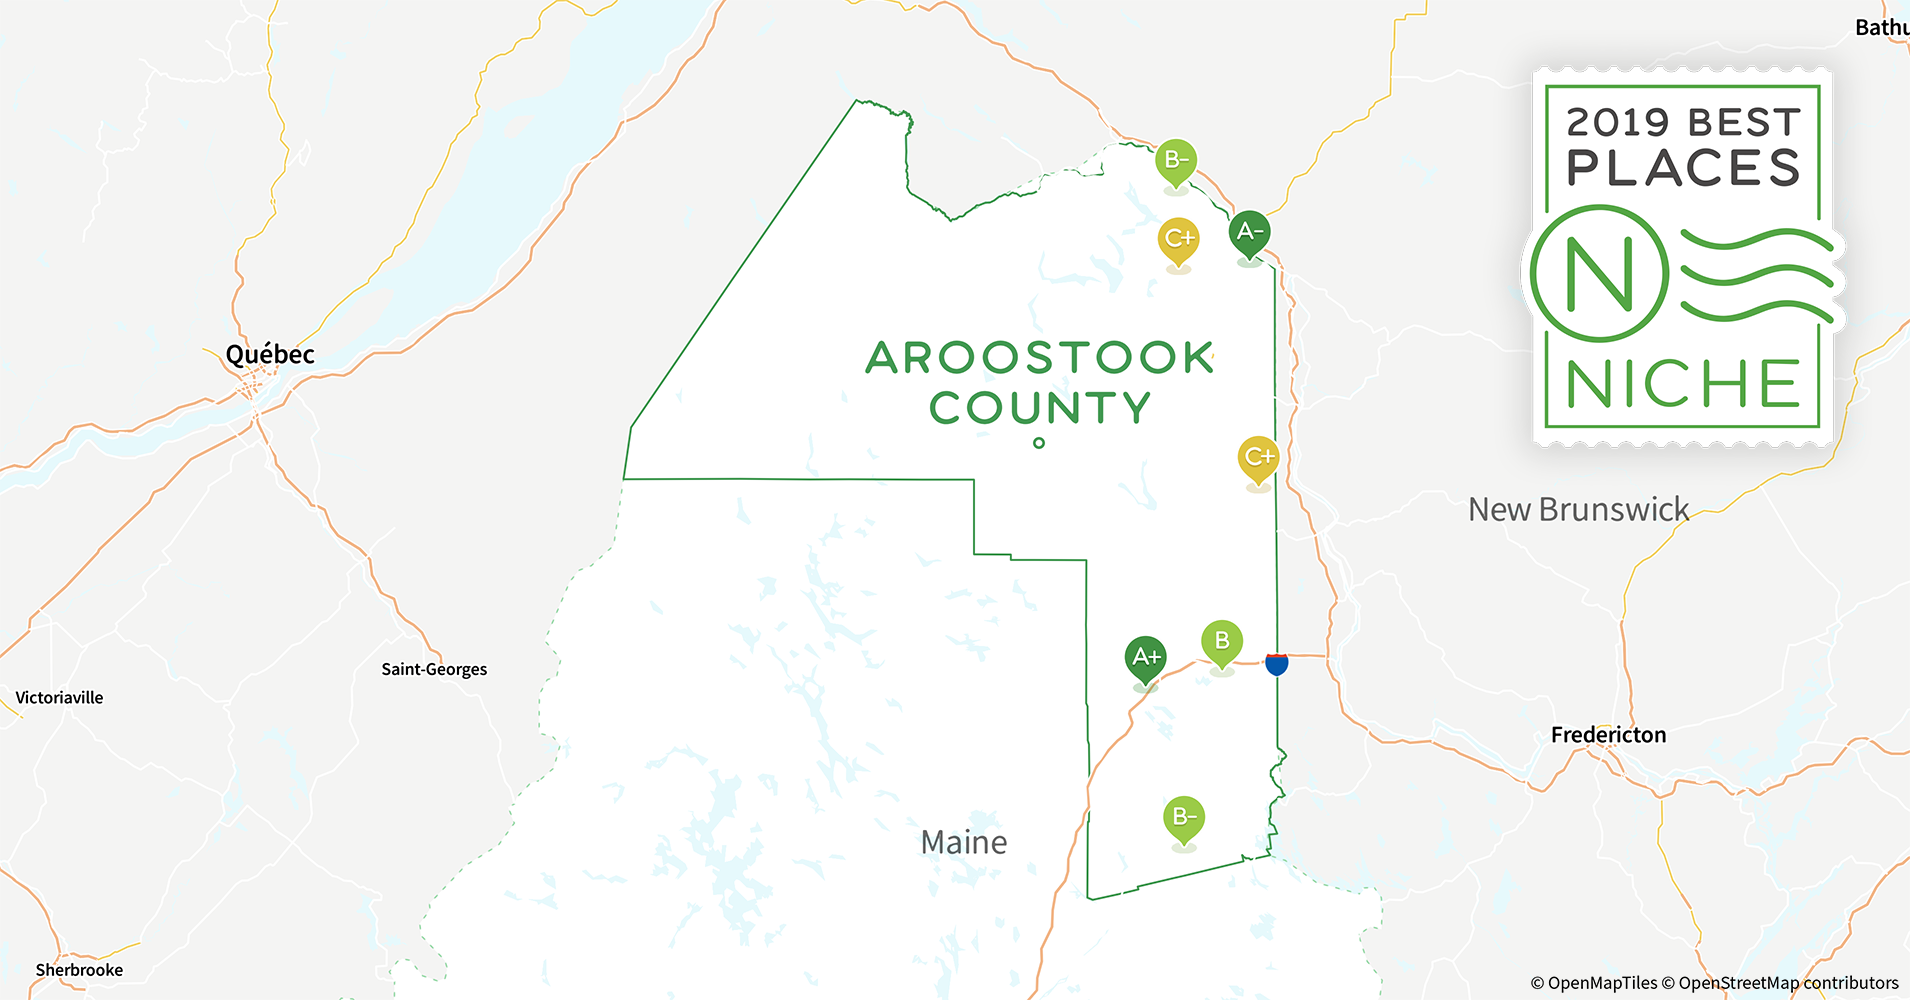 2019 Best Places to Live in Aroostook County, ME - Niche Map Of Aroostook County Maine on map of kenduskeag me, map of bay of fundy maine, map of weeksboro maine, map of kennebec river maine, map of dover-foxcroft maine, map of crystal maine, map of washington county maine, map of homeland security field offices, map of alna maine, map of washburn maine, map of merrill maine, motels near dresden maine, map of knox county me, fun places to visit in maine, map of silver ridge maine, map of grand isle maine, map of sagadahoc county maine, map of new limerick maine, map of northern maine, glenwood plantation maine,